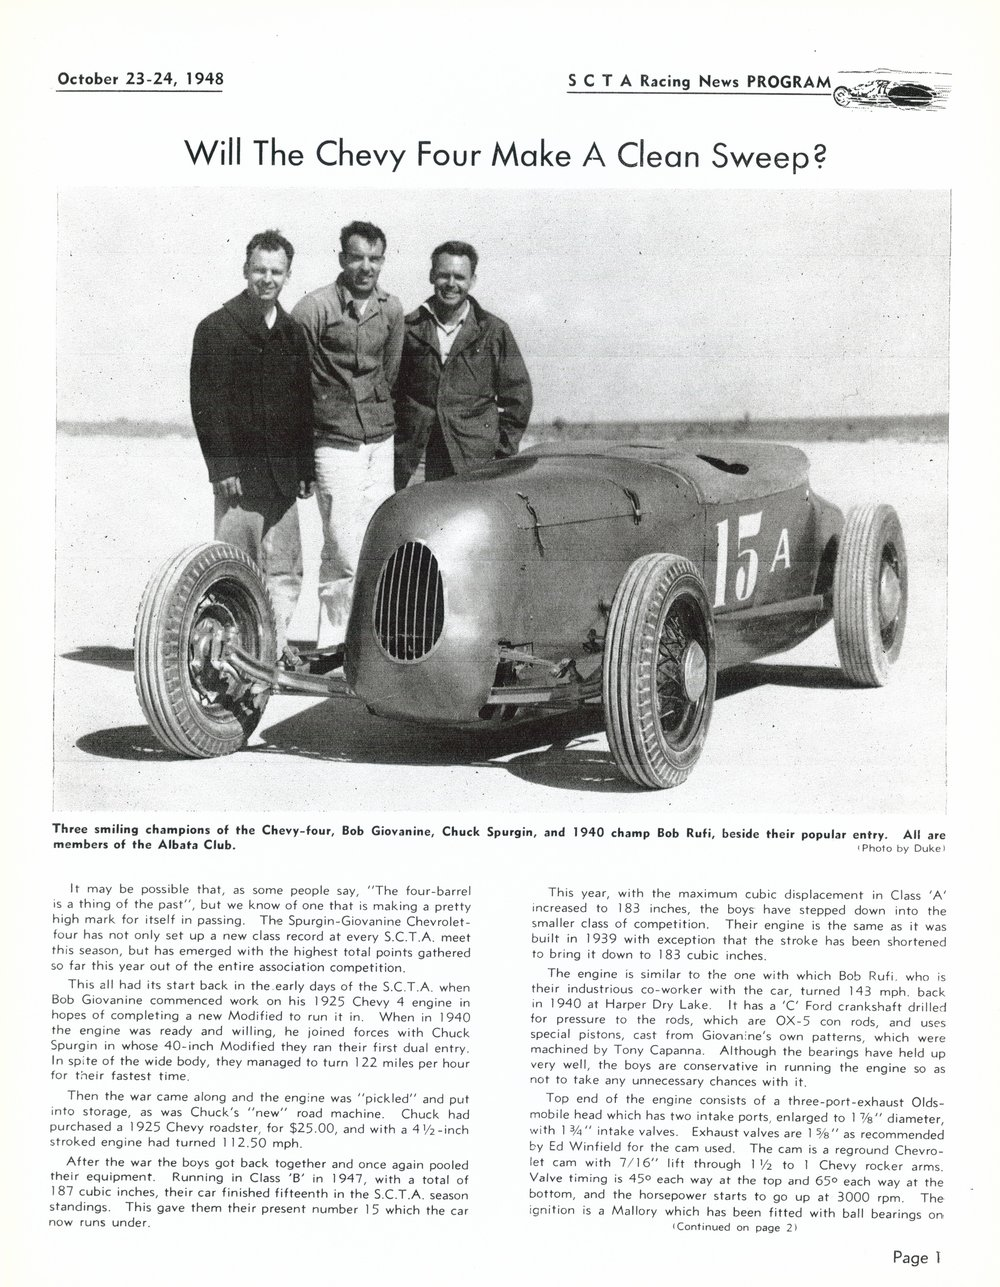 1948 SCTA Racing News Program pg 01.jpg